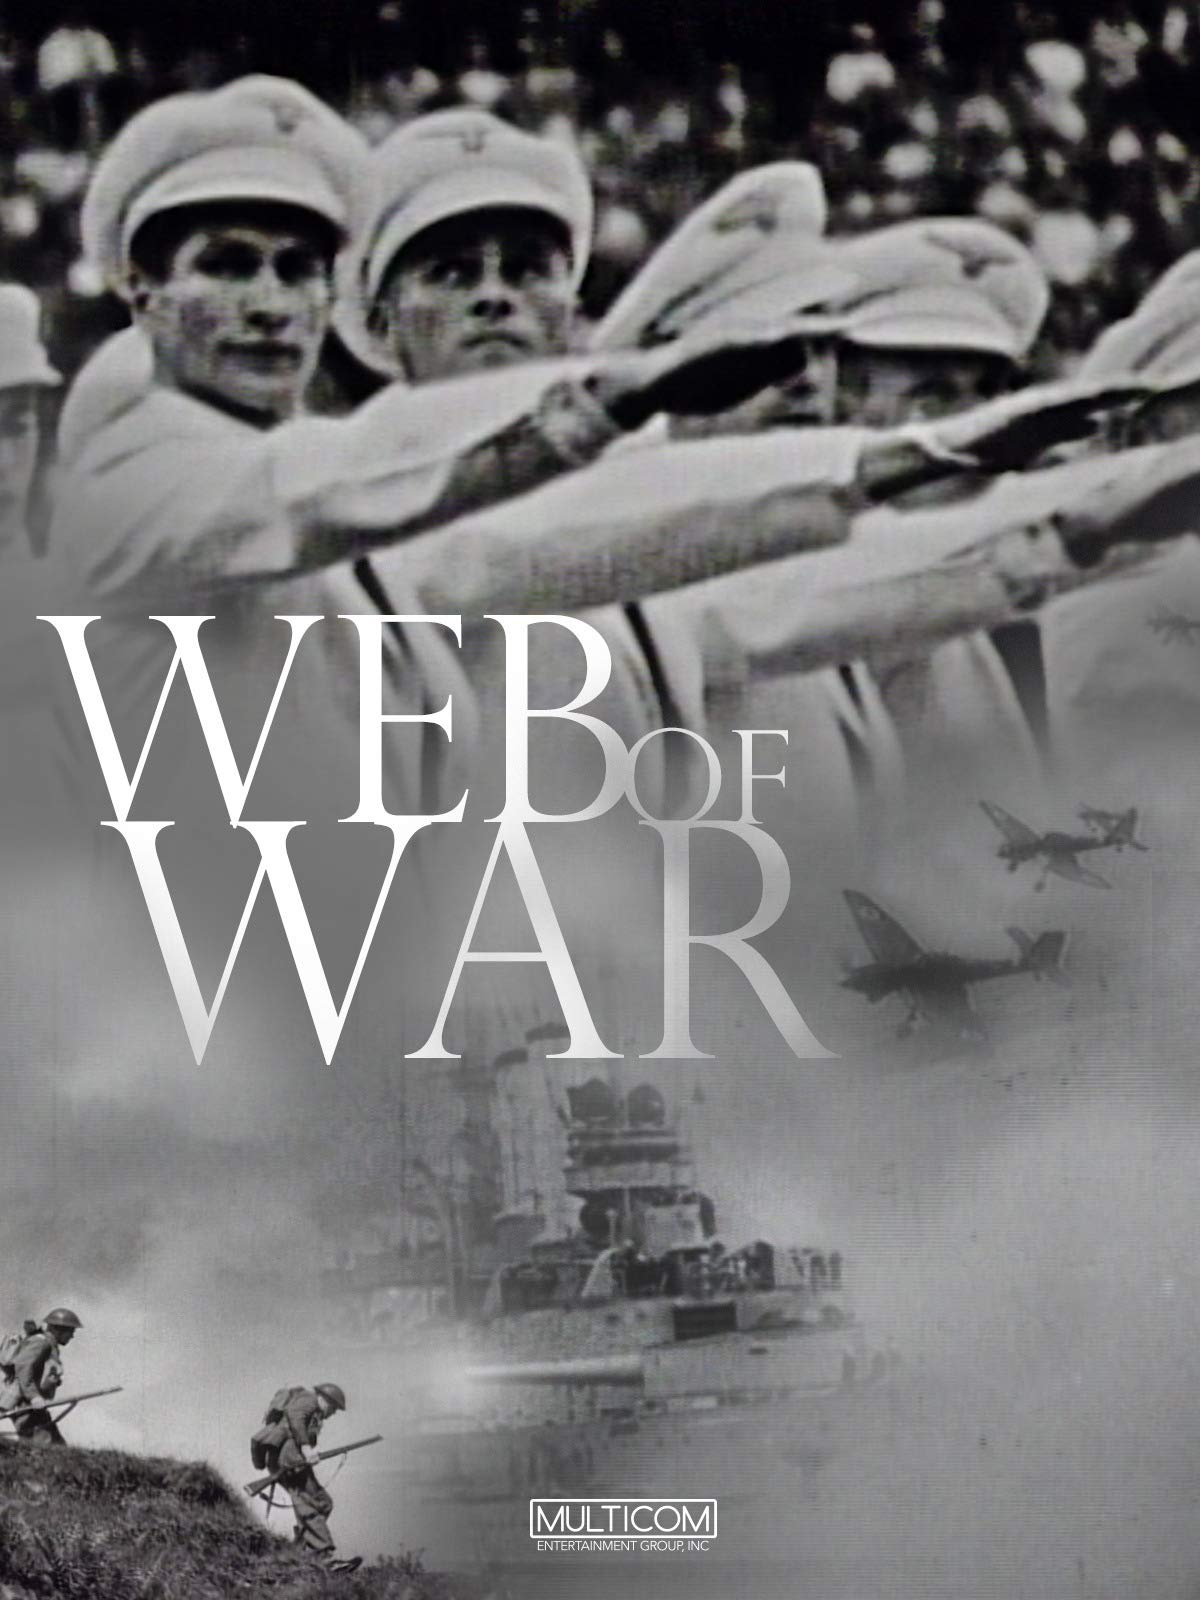 A Web of War